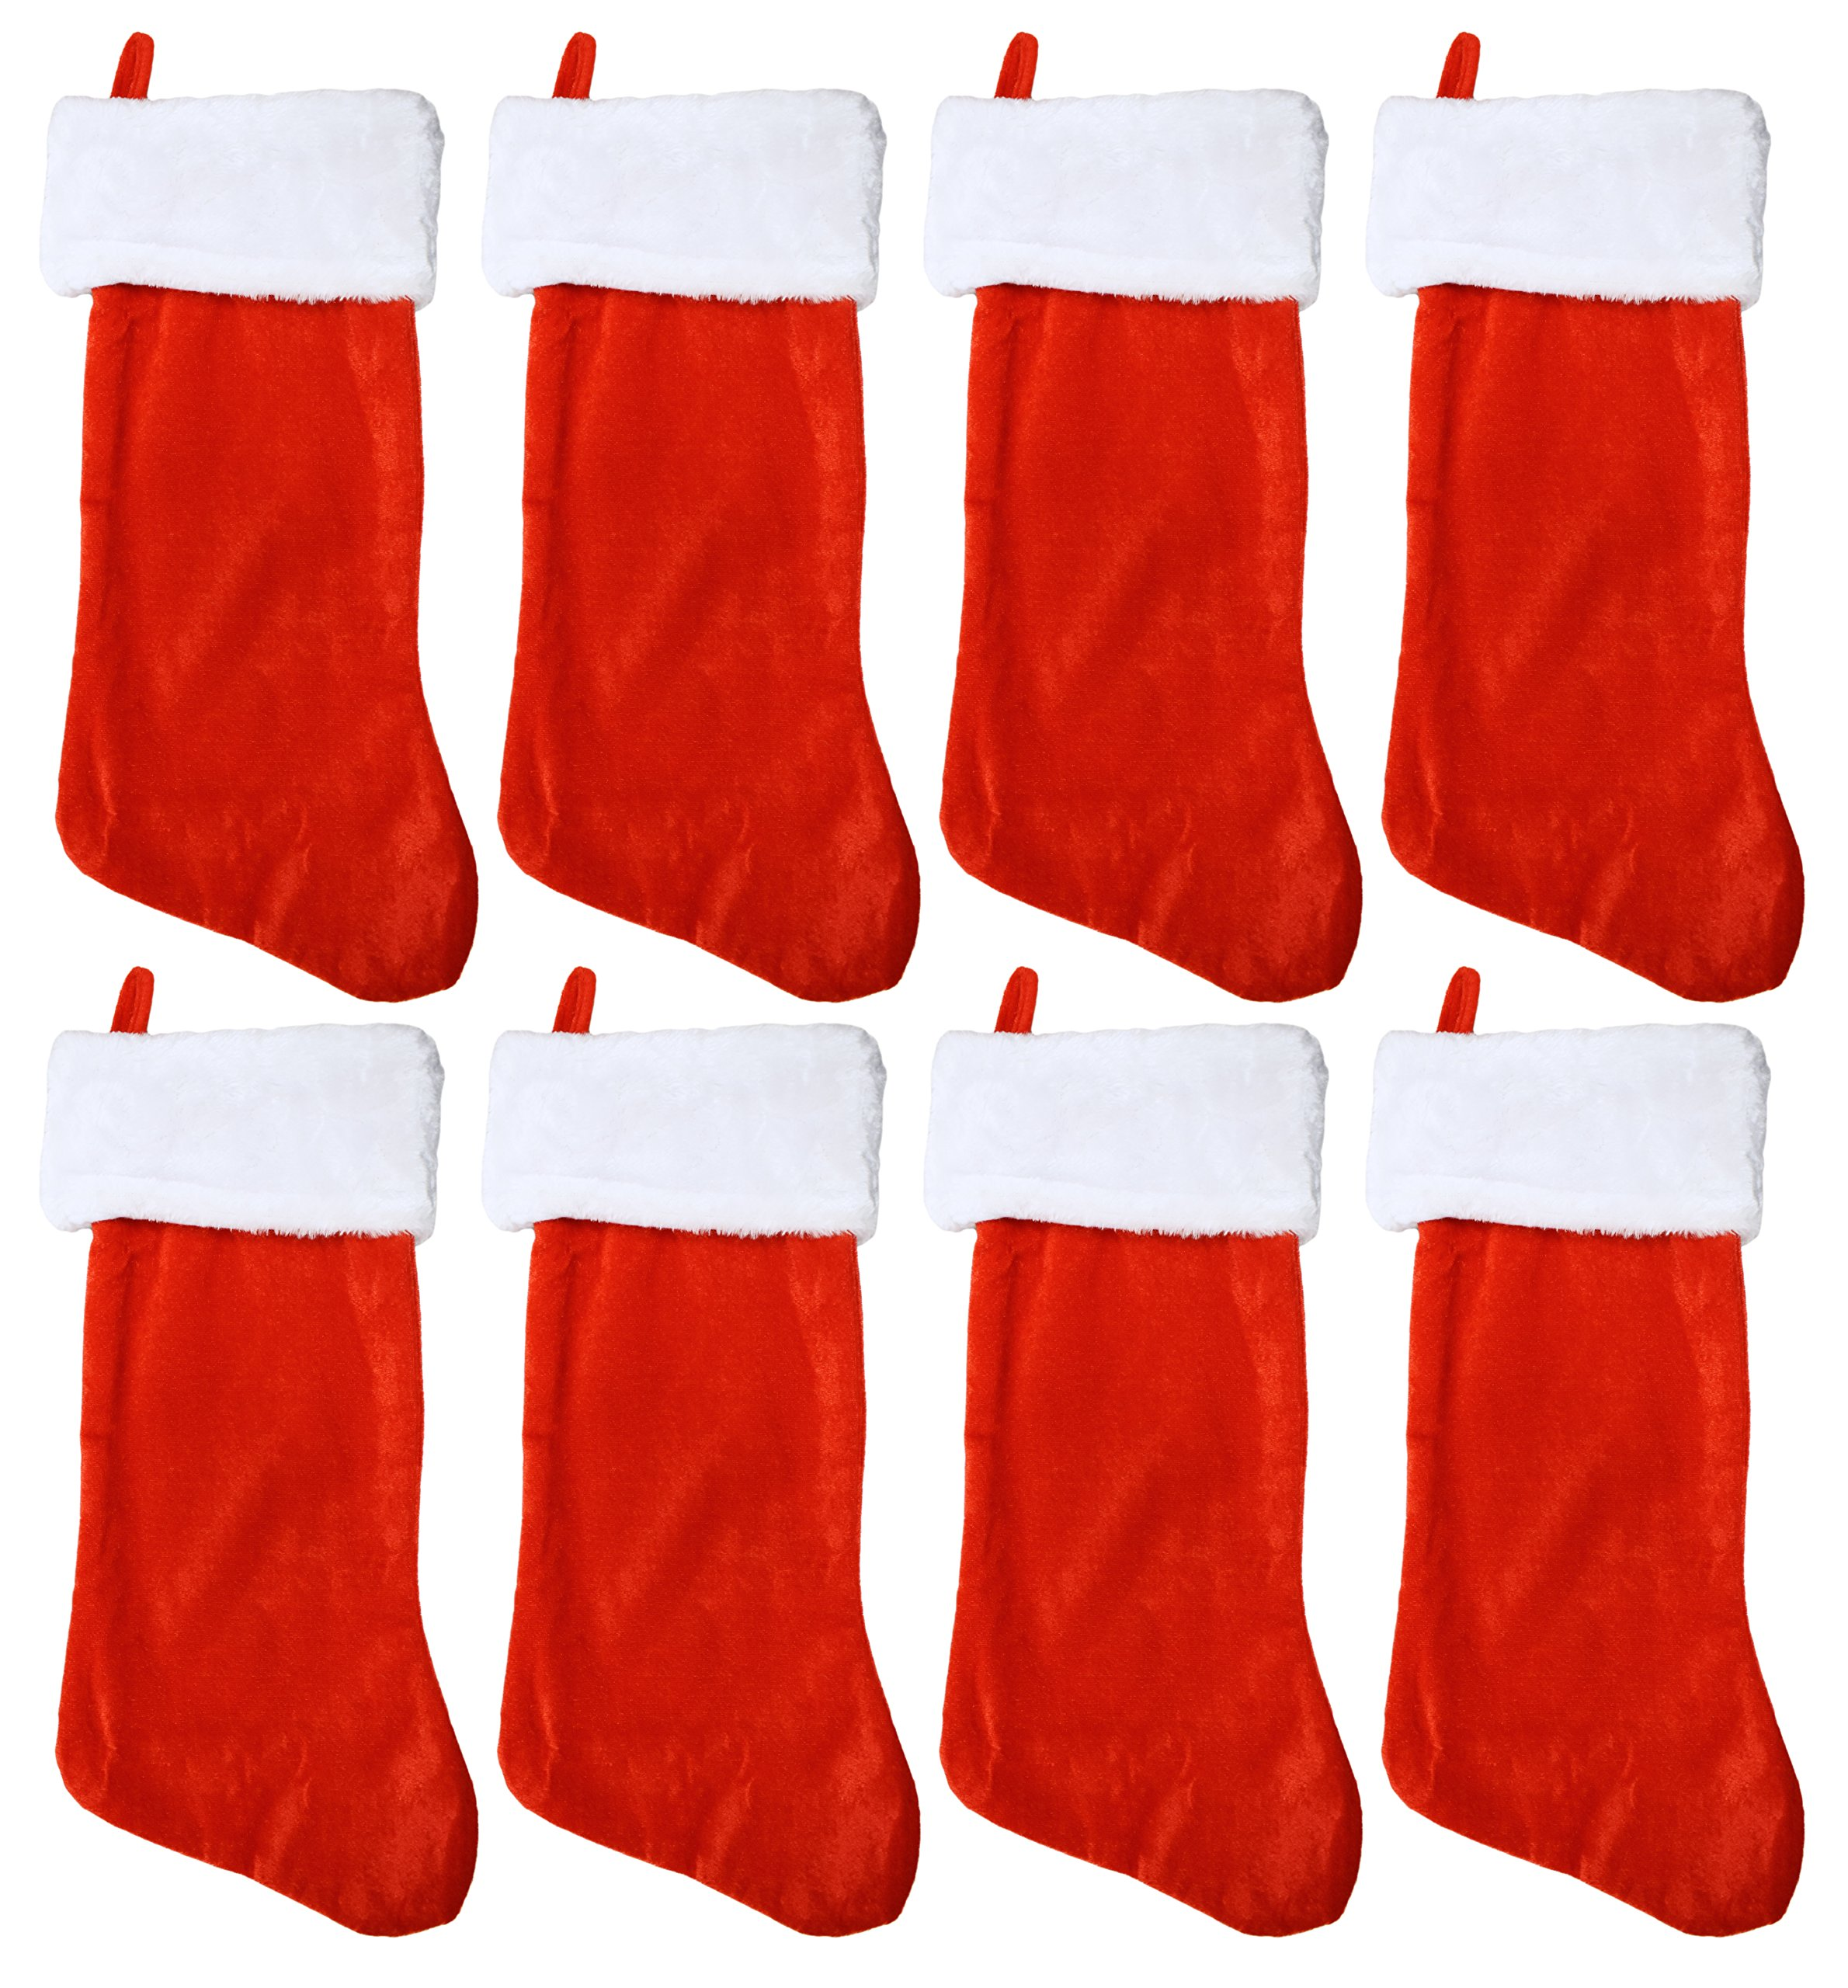 Set of 8 Black Duck Brand 19'' Red Soft Plush Stocking (8 Pack) W/White Plush Cuff & Red Hanging Tag